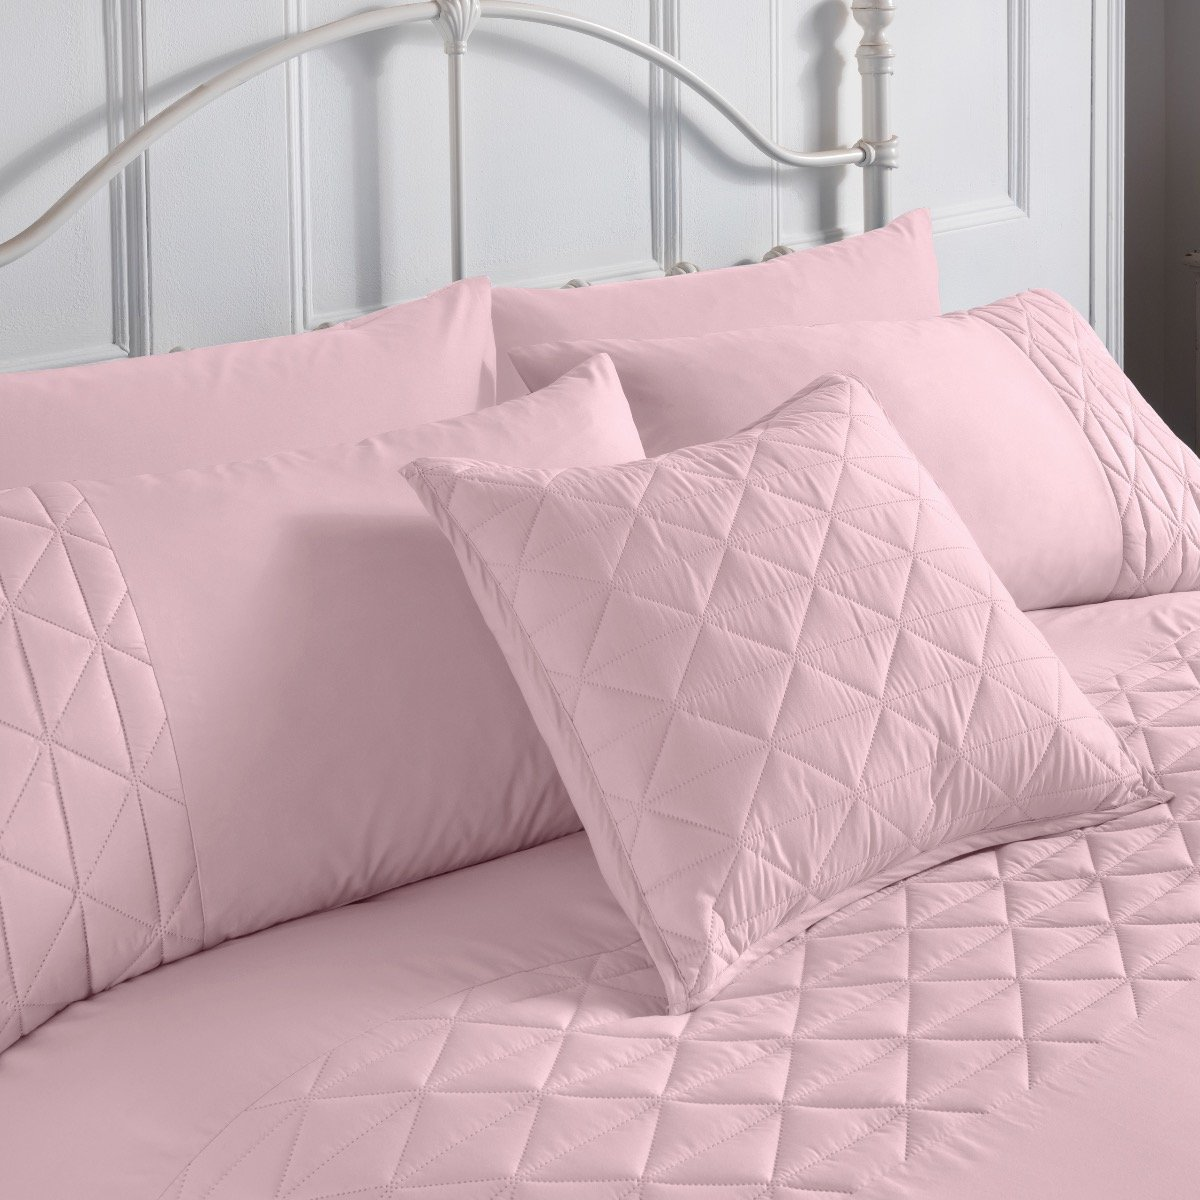 Pinsonic Pink Bedding - Reversible Duvet Cover and Pillowcase Set